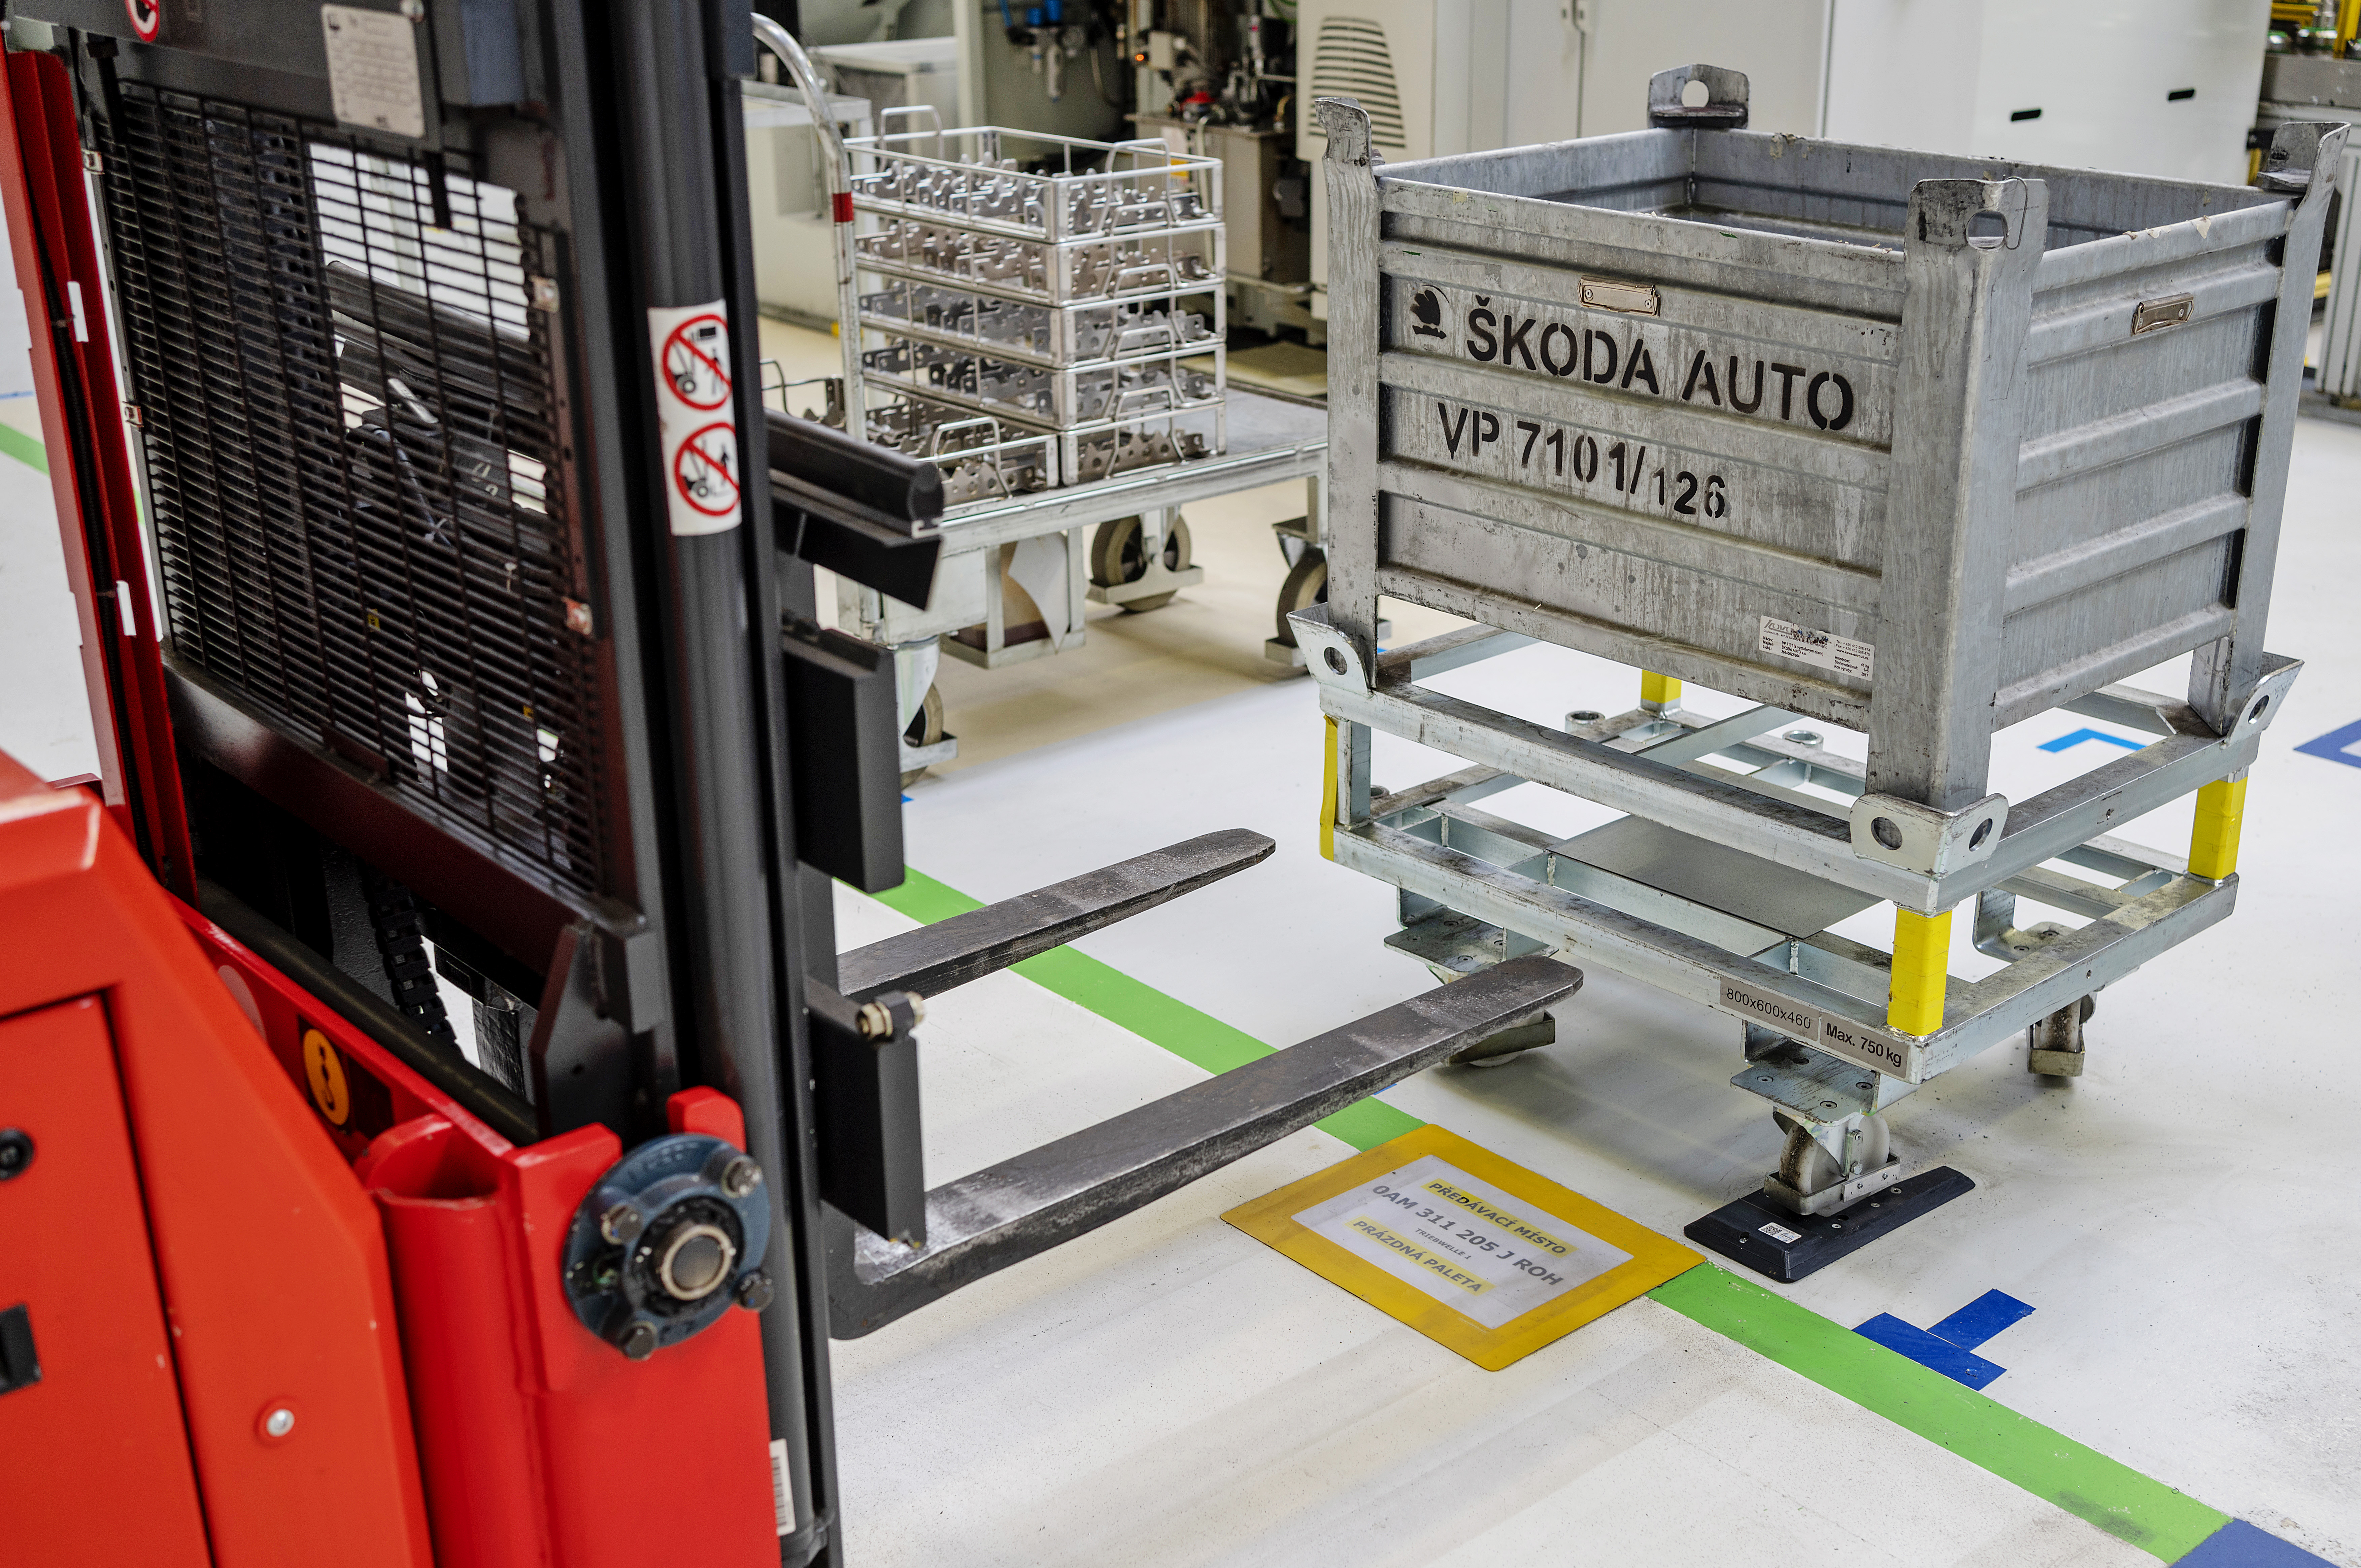 SKODA AUTO Vrchlabí plant launches automated ordering and supply of parts for CNC processing lines - Image 1